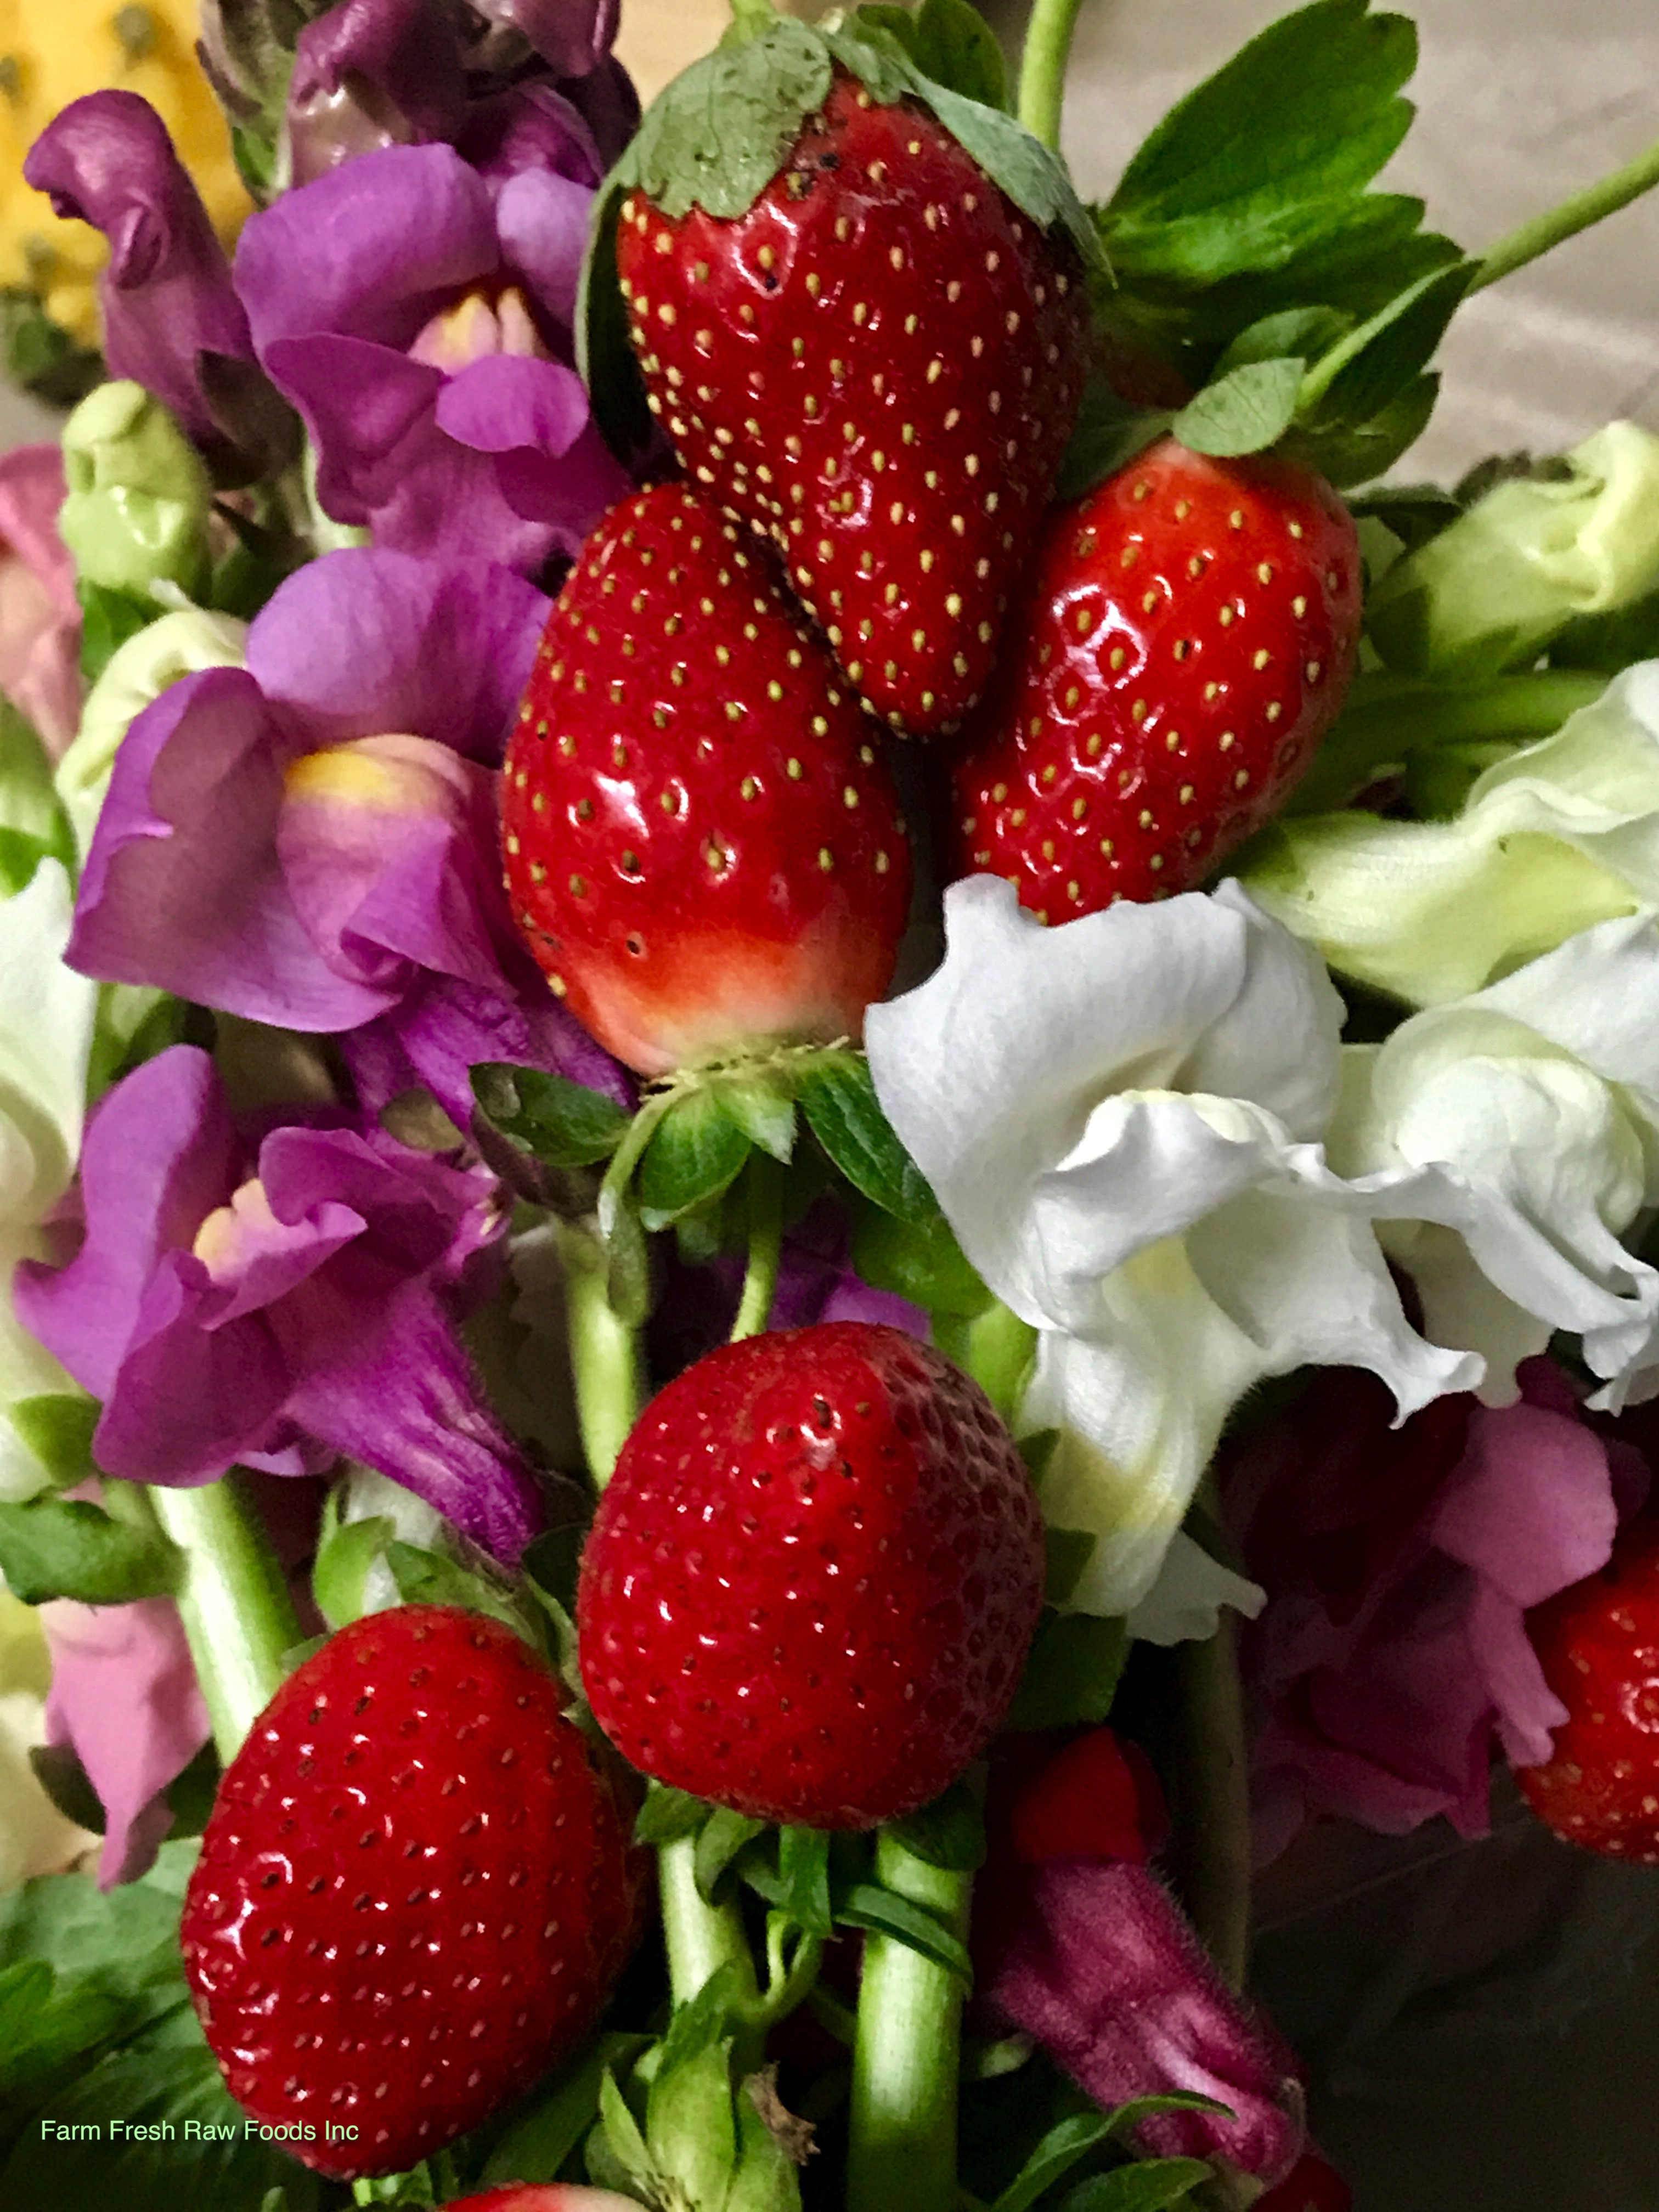 Strawberries & flowers FL